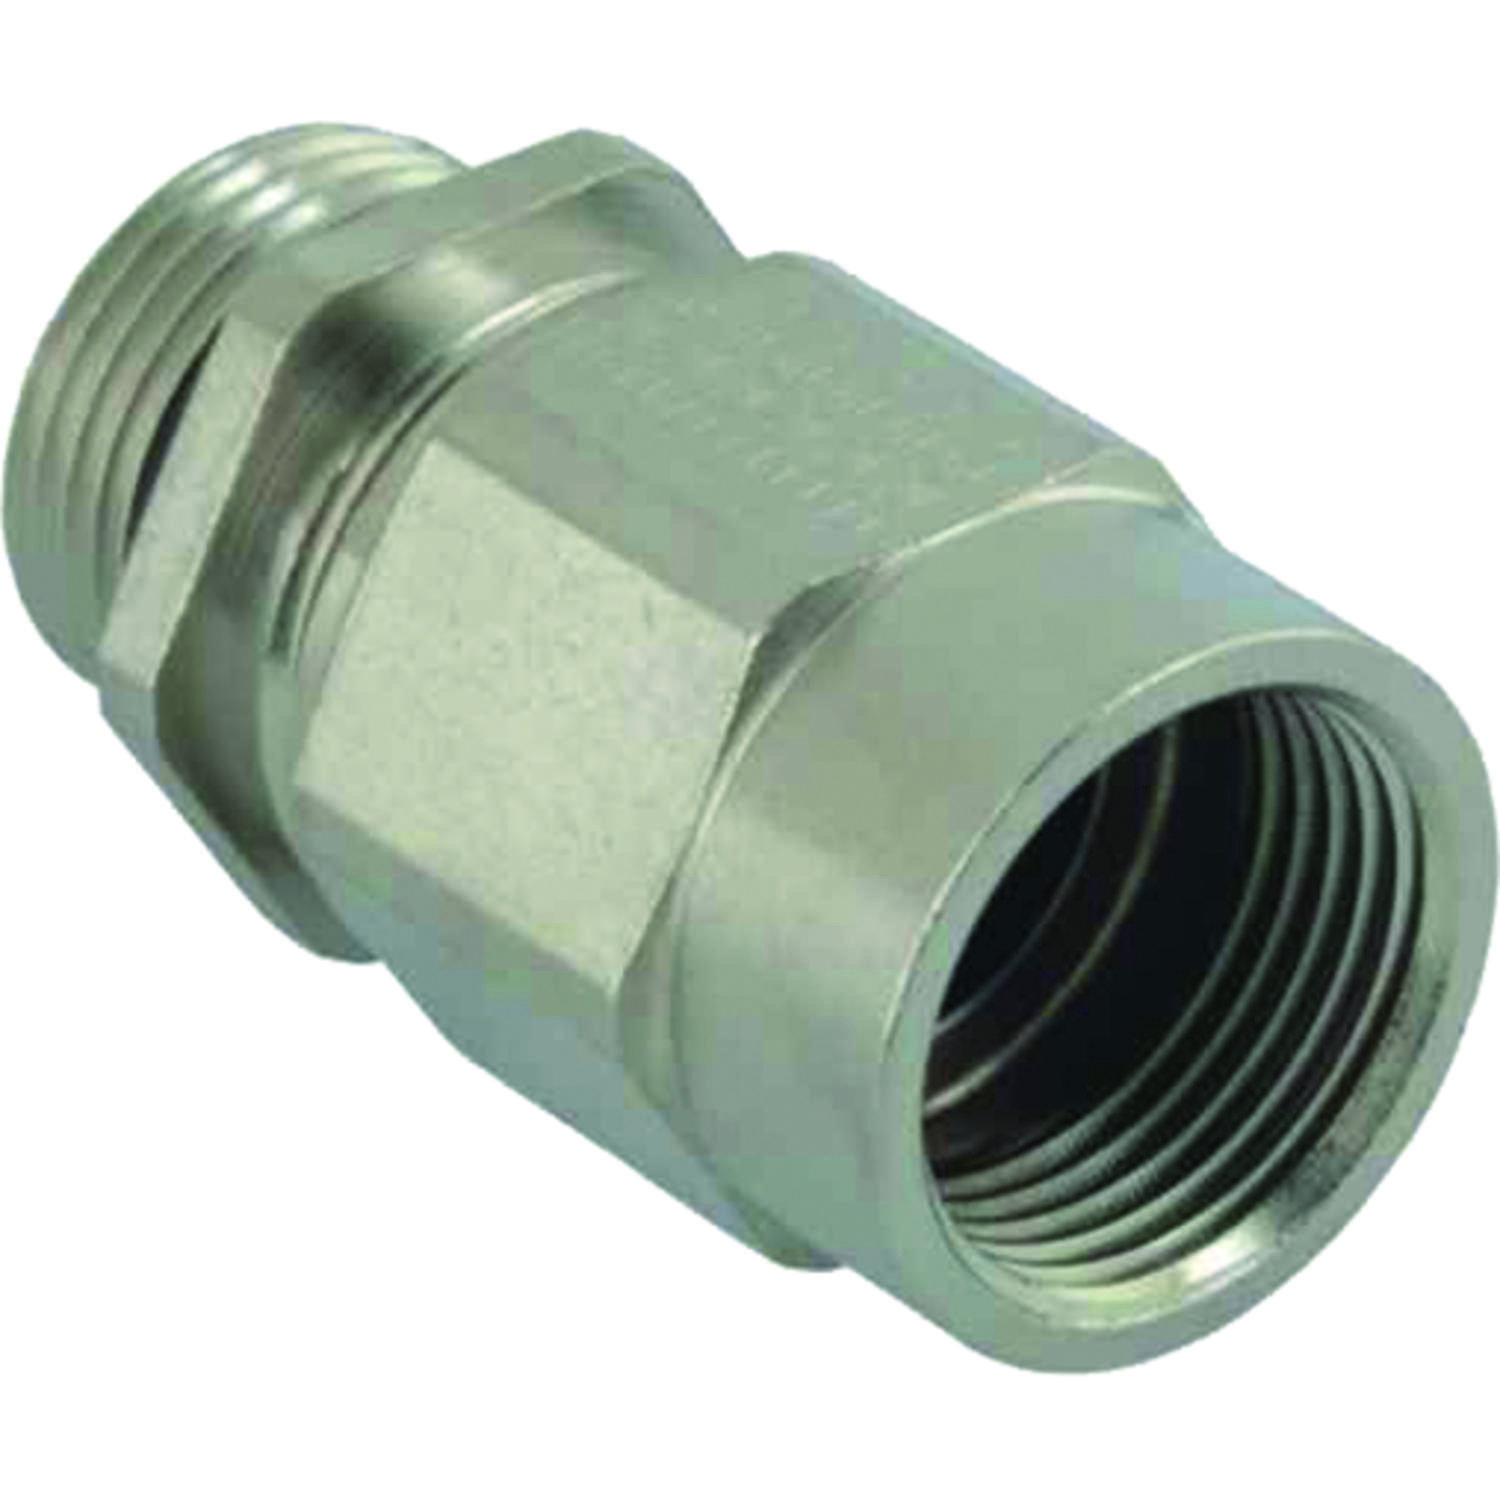 Conduit Glands and adapters